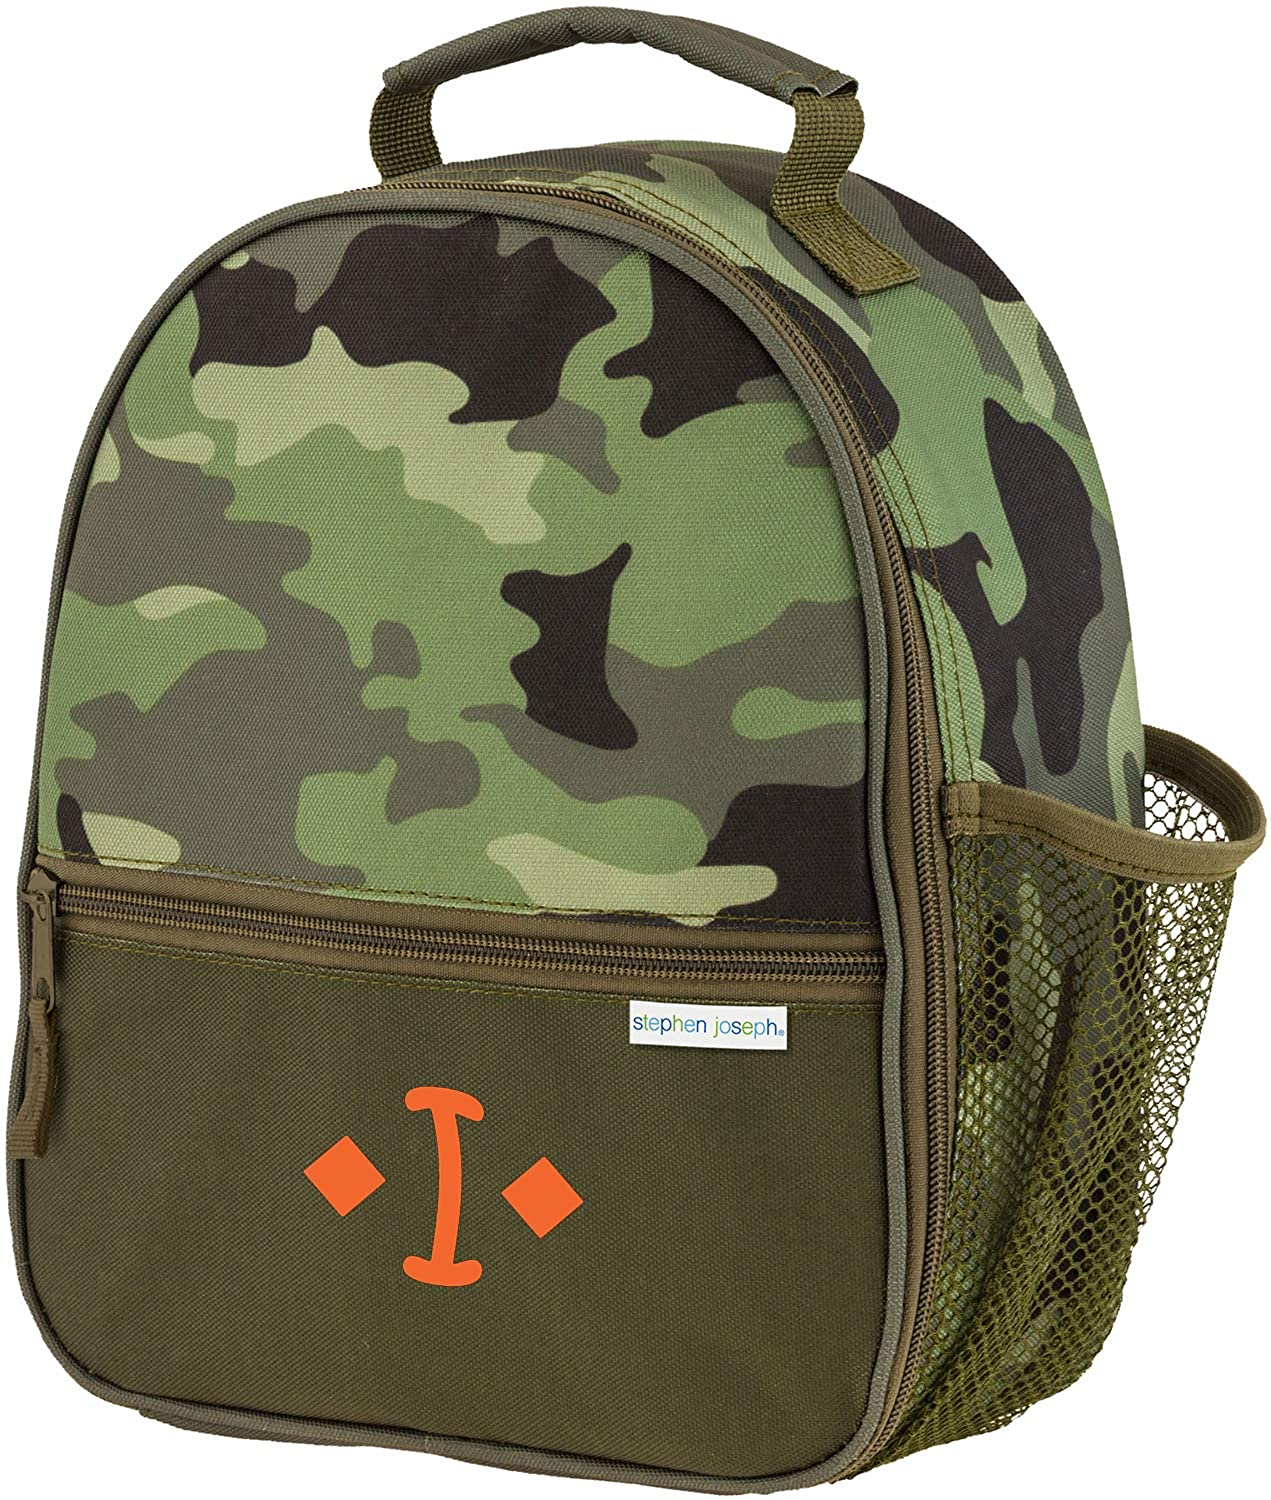 Monogrammed Me All Over Print Lunch Box, Green Camo, with Vinyl Kids Monogram